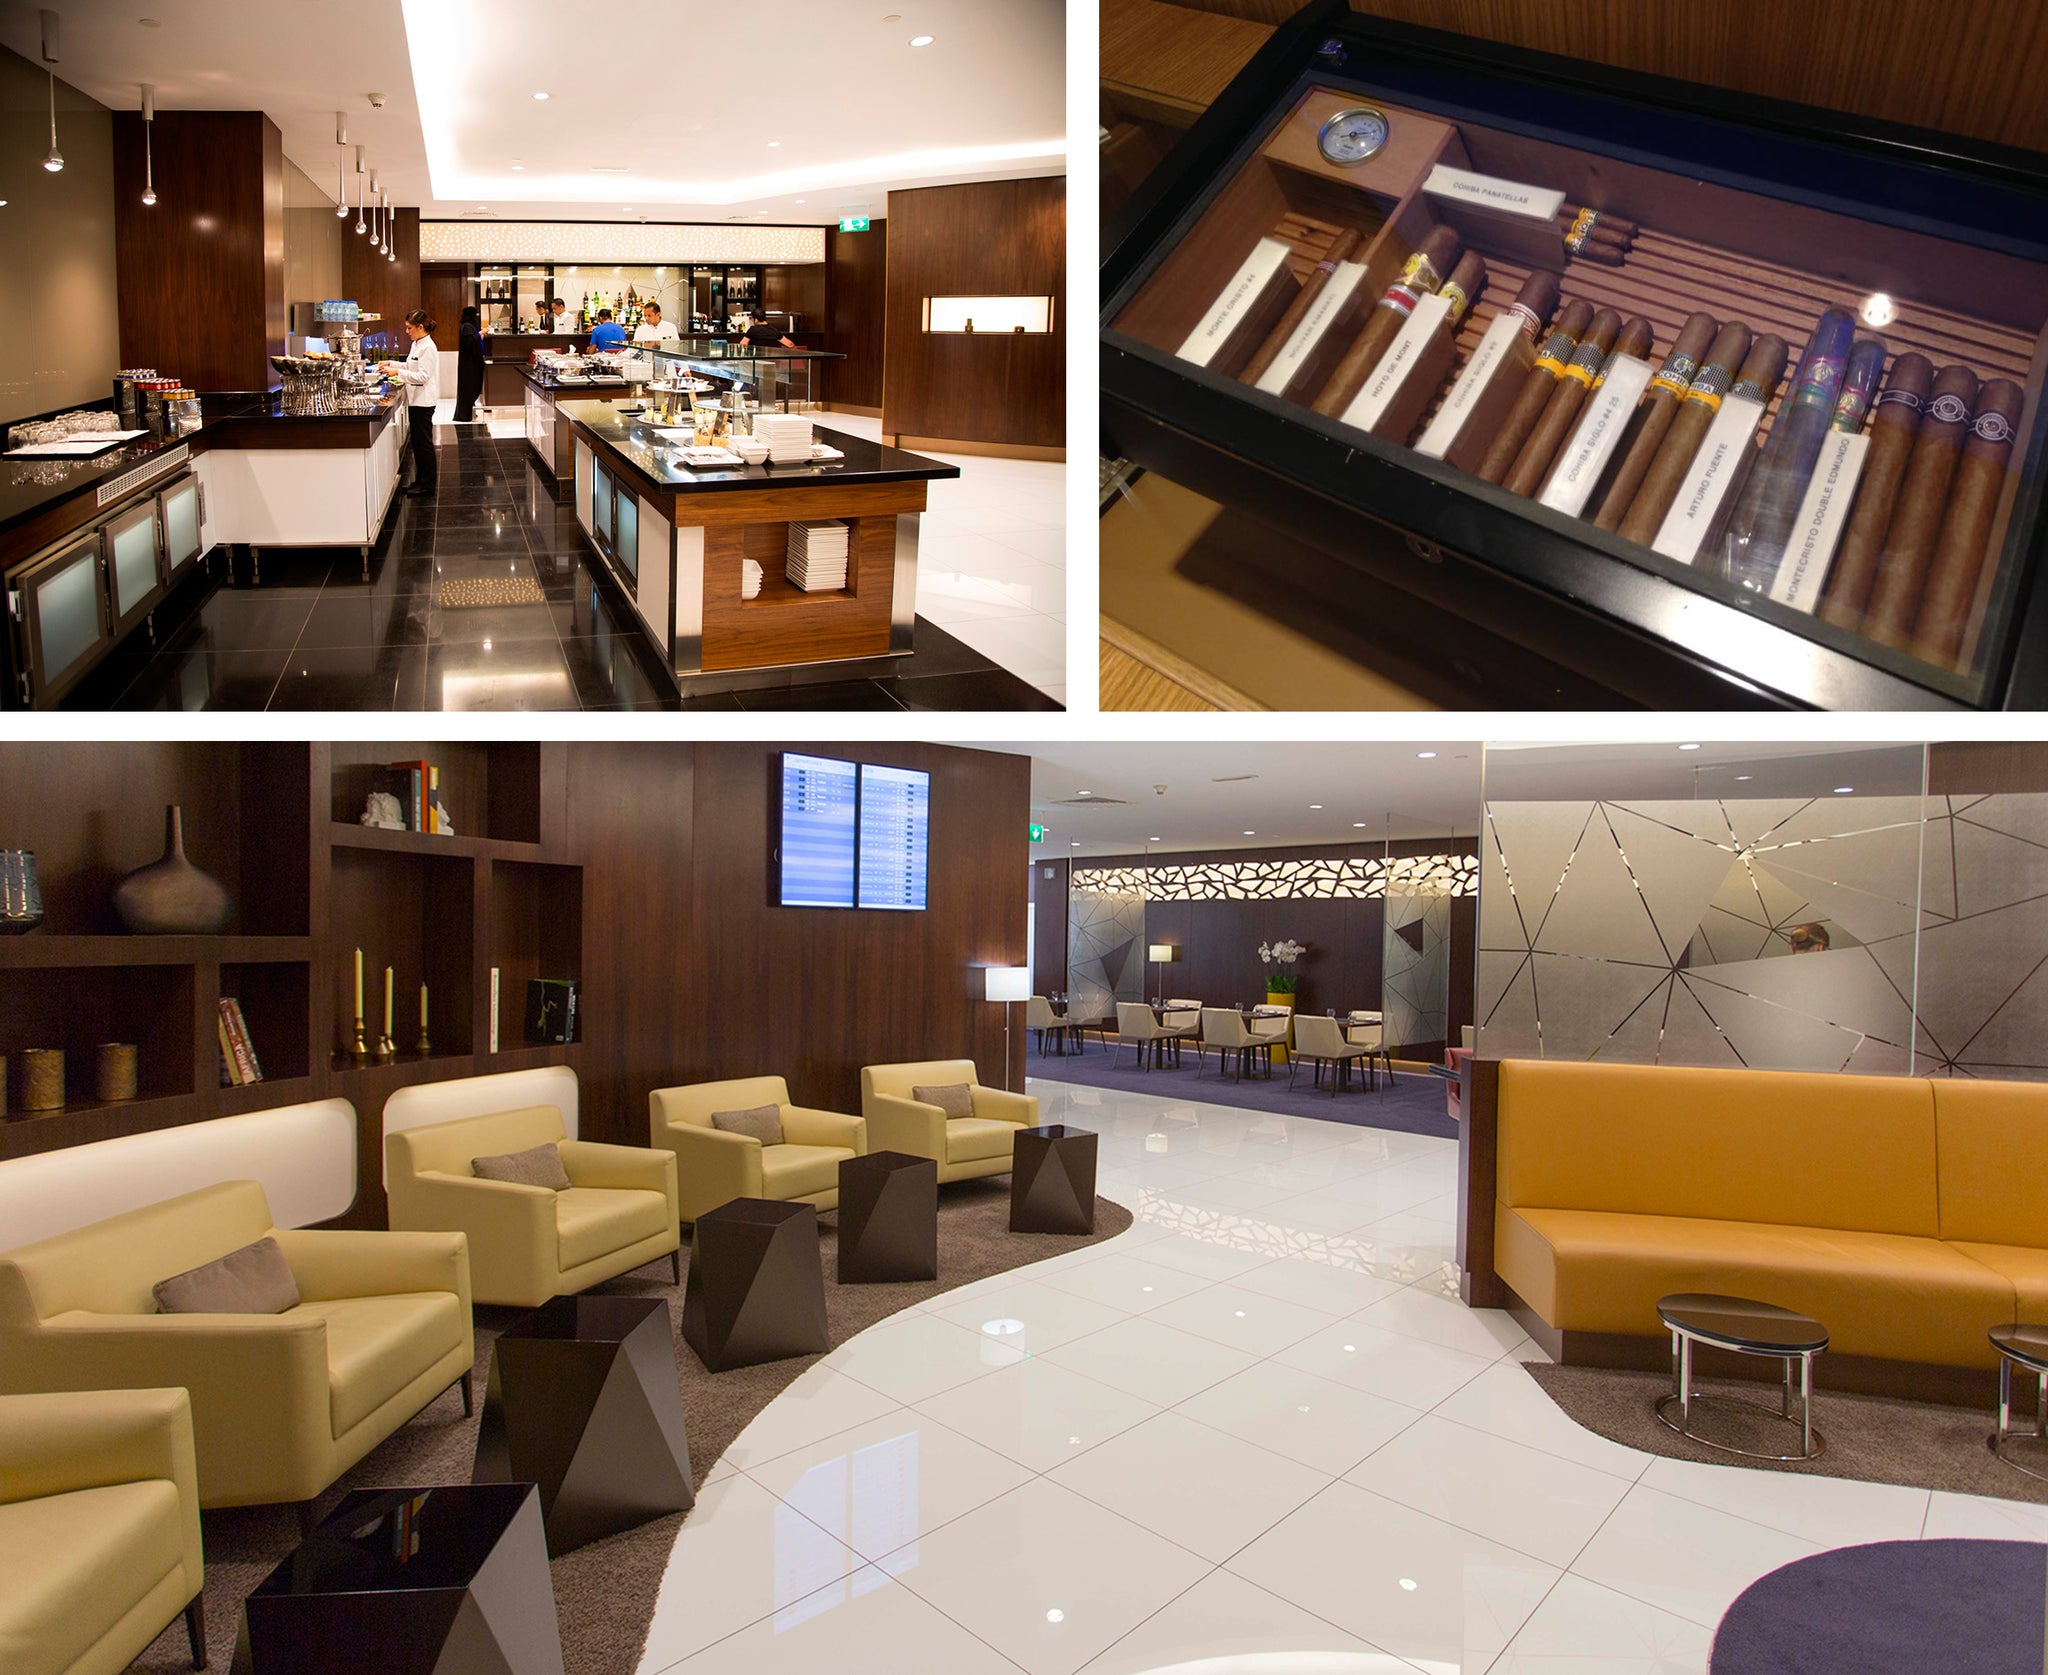 inside etihad airways first class lounge in abu dhabi airport EGM Cigars